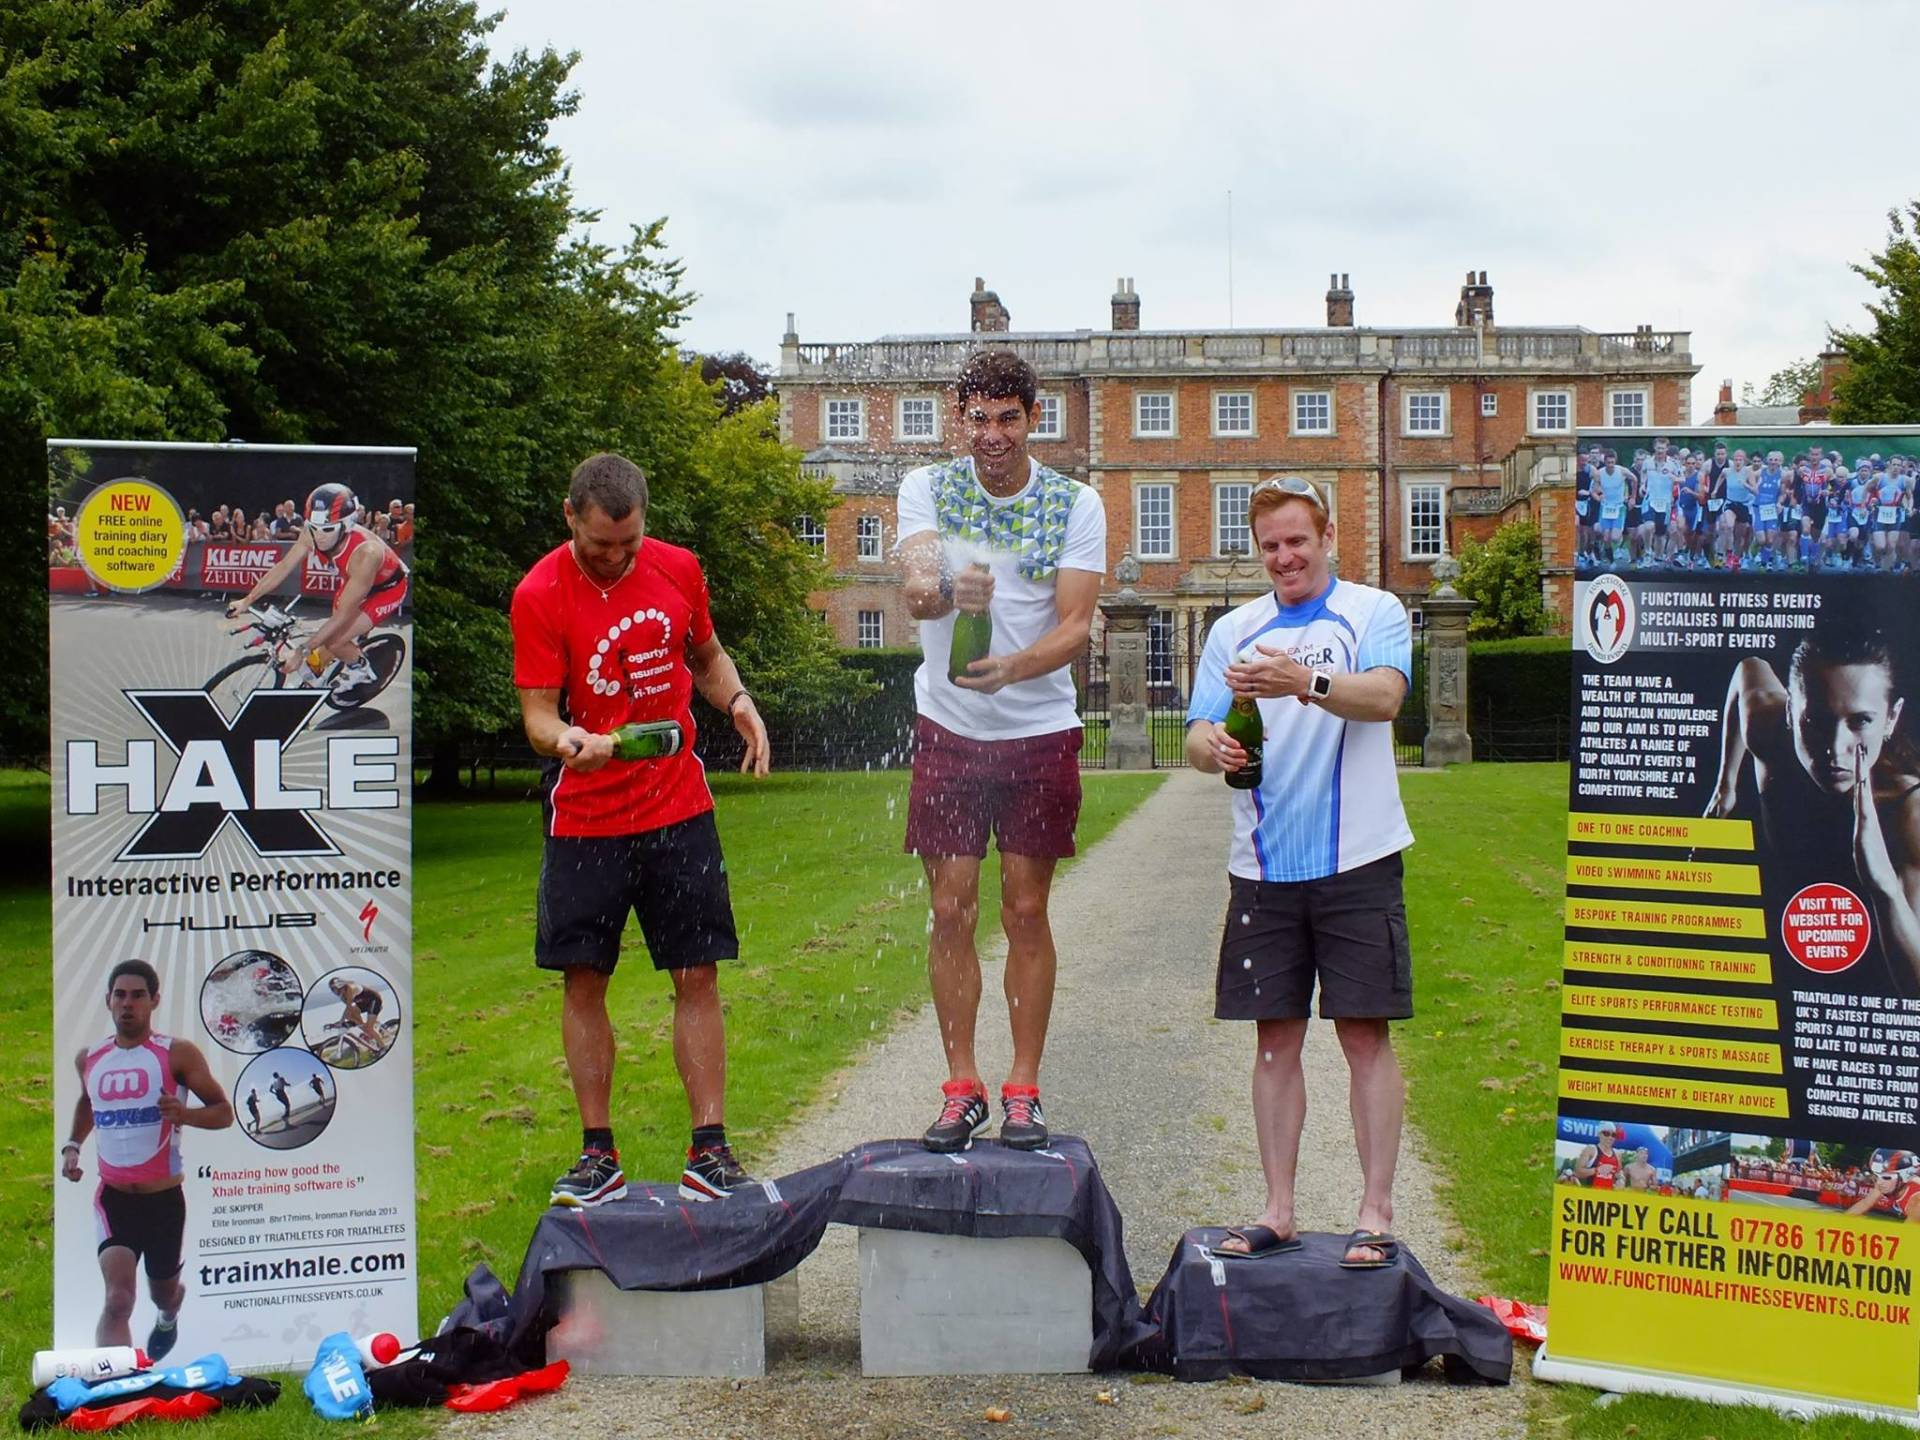 Wins for Tim and Karl on the Road – Top performances in Rubicon Triathlon